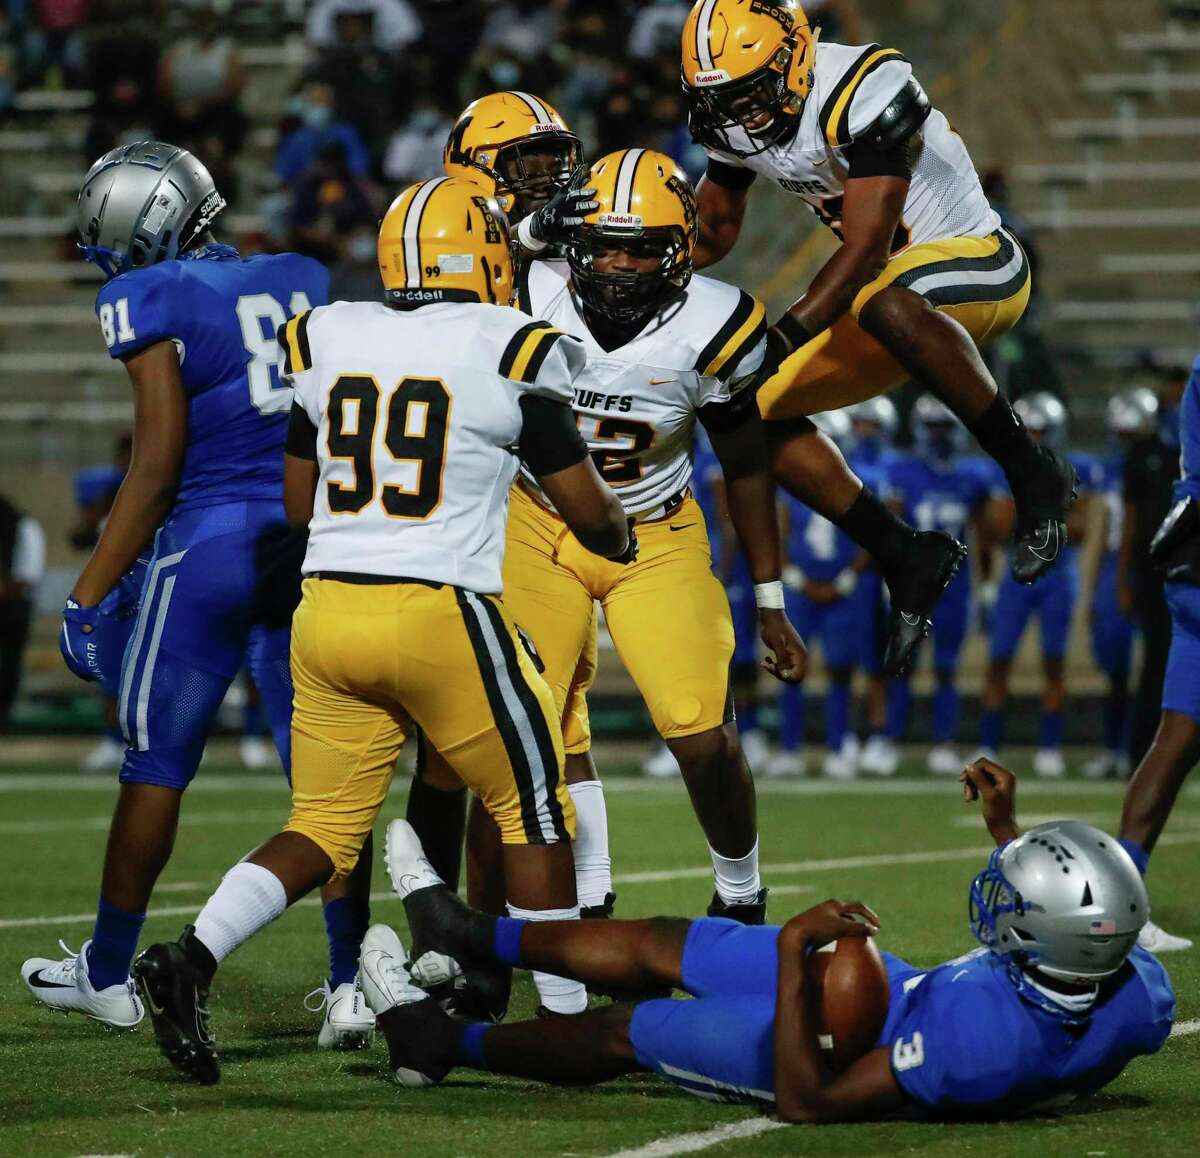 Fort Bend Marshall defensive end Zachary Chapman (42) celebrates with his teammates after sacking Willowridge quarterback Rufus Scott for a loss during an 11-5A matchup at Hall Stadium Thursday, Nov. 12, 2020 in Missouri City.